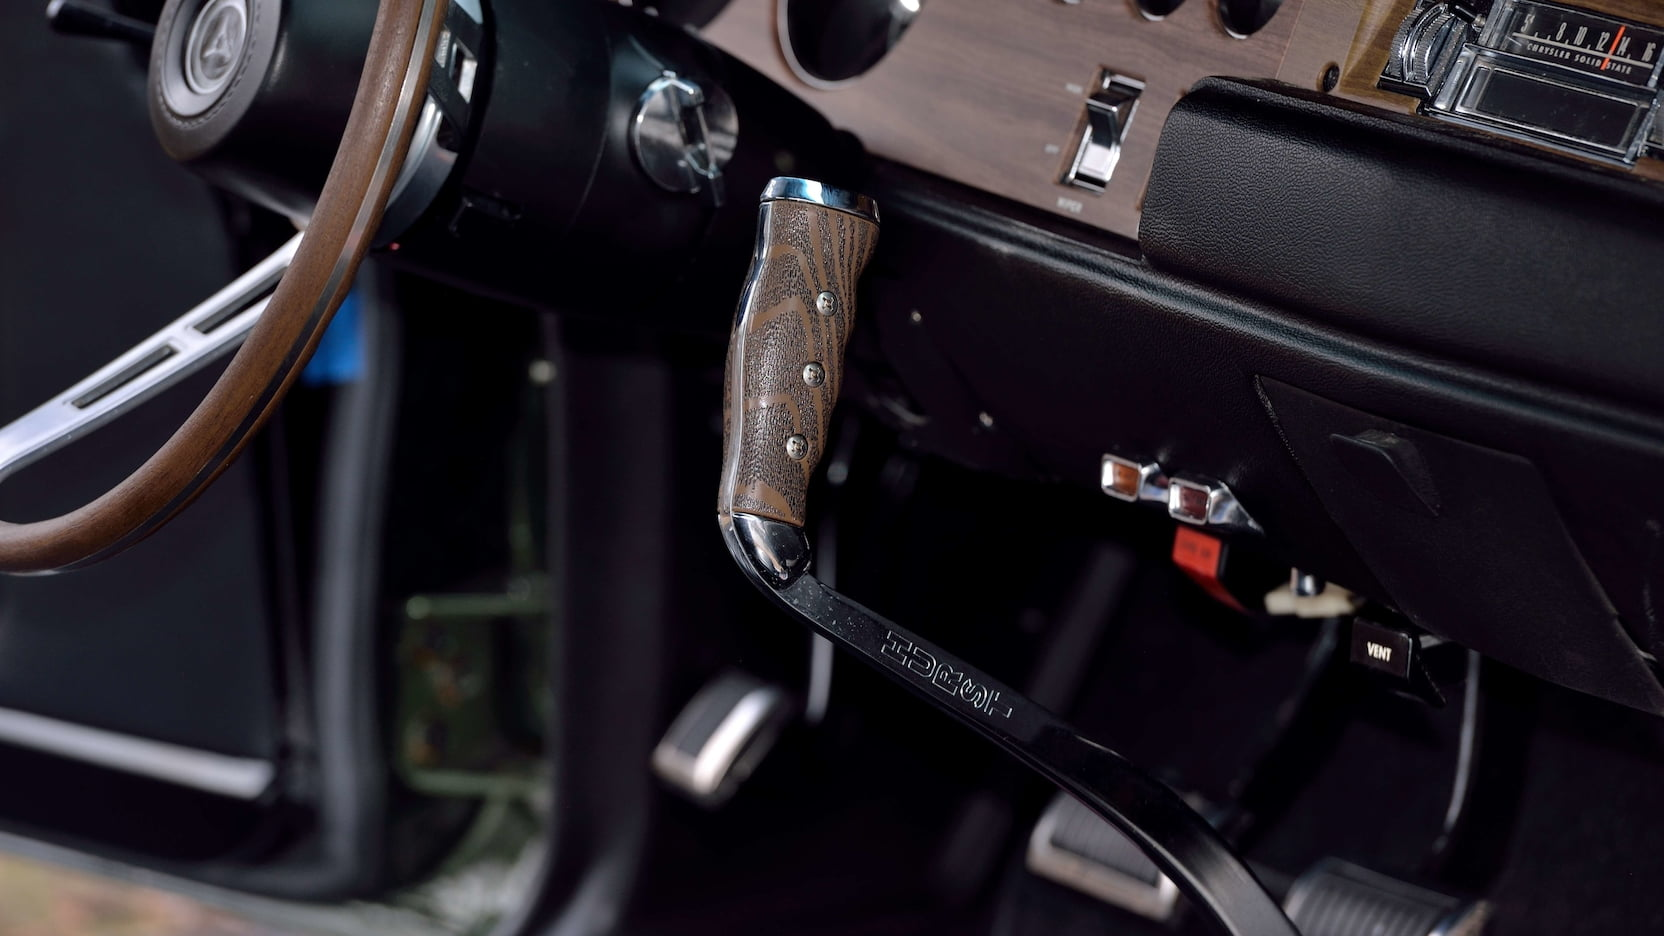 1970 Dodge Hemi Coronet RT Interior Shifter